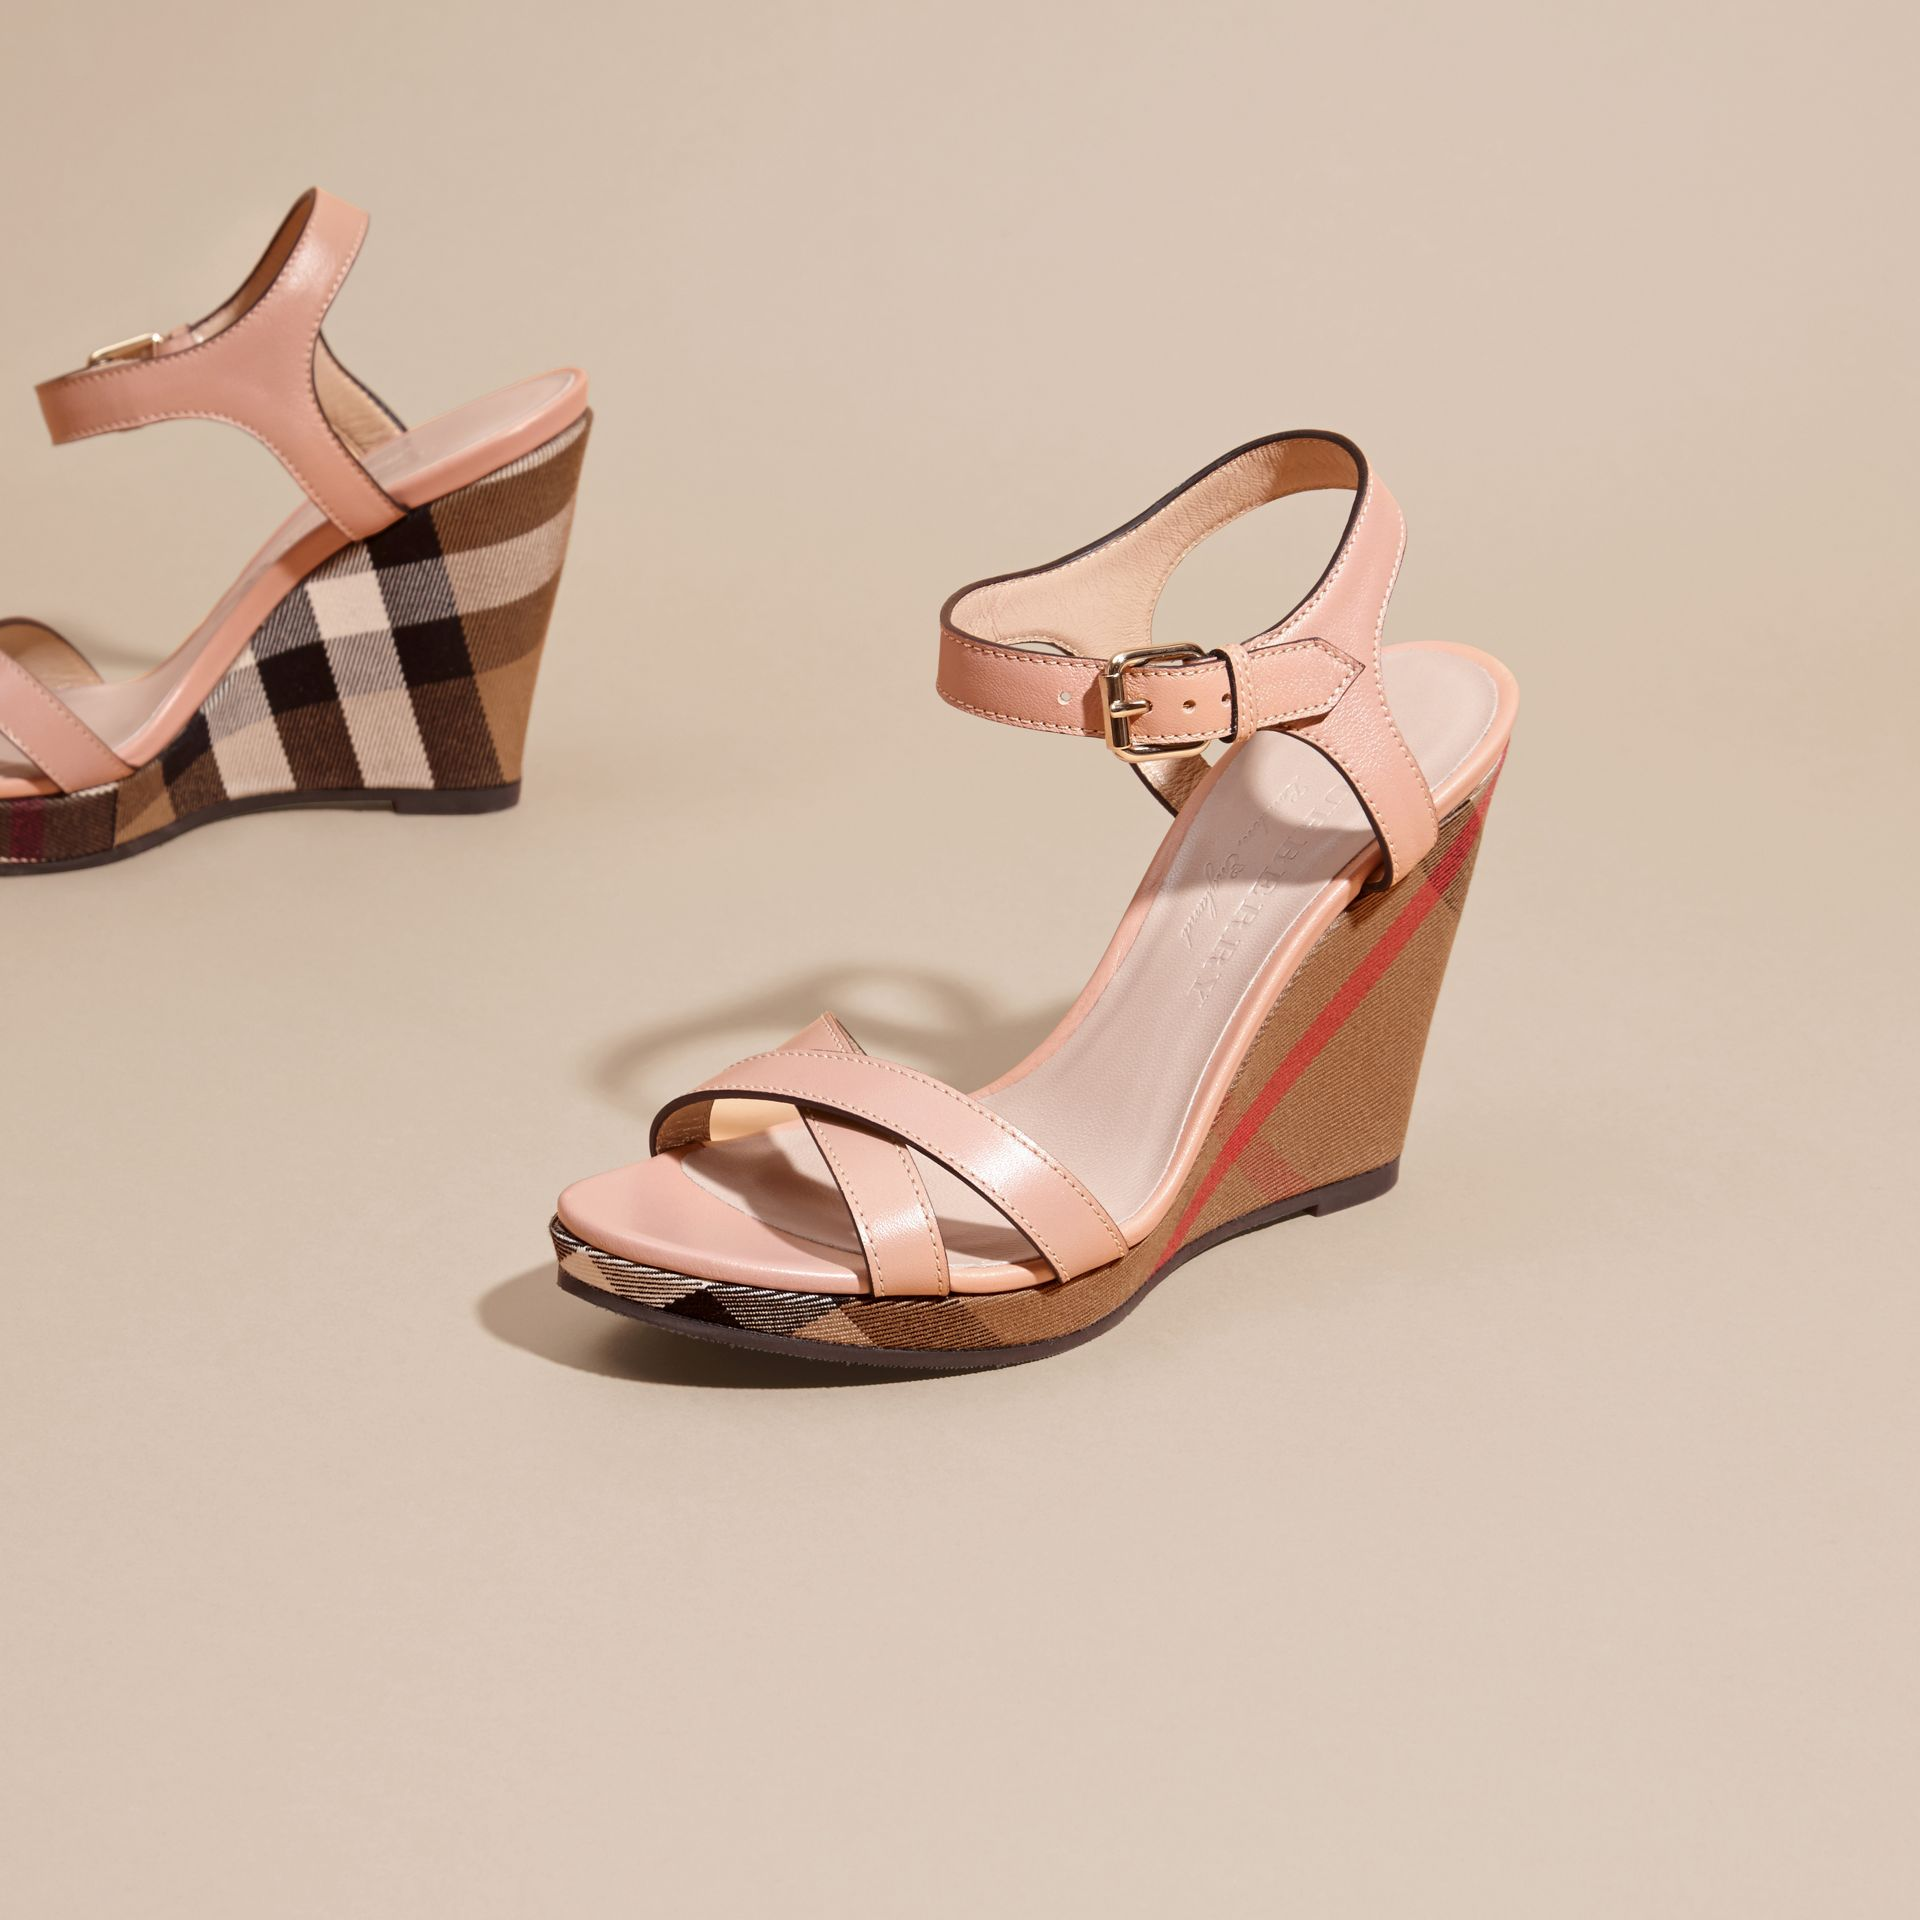 House Check Detail Leather Wedge Sandals in Nude Blush - Women | Burberry Singapore - gallery image 3